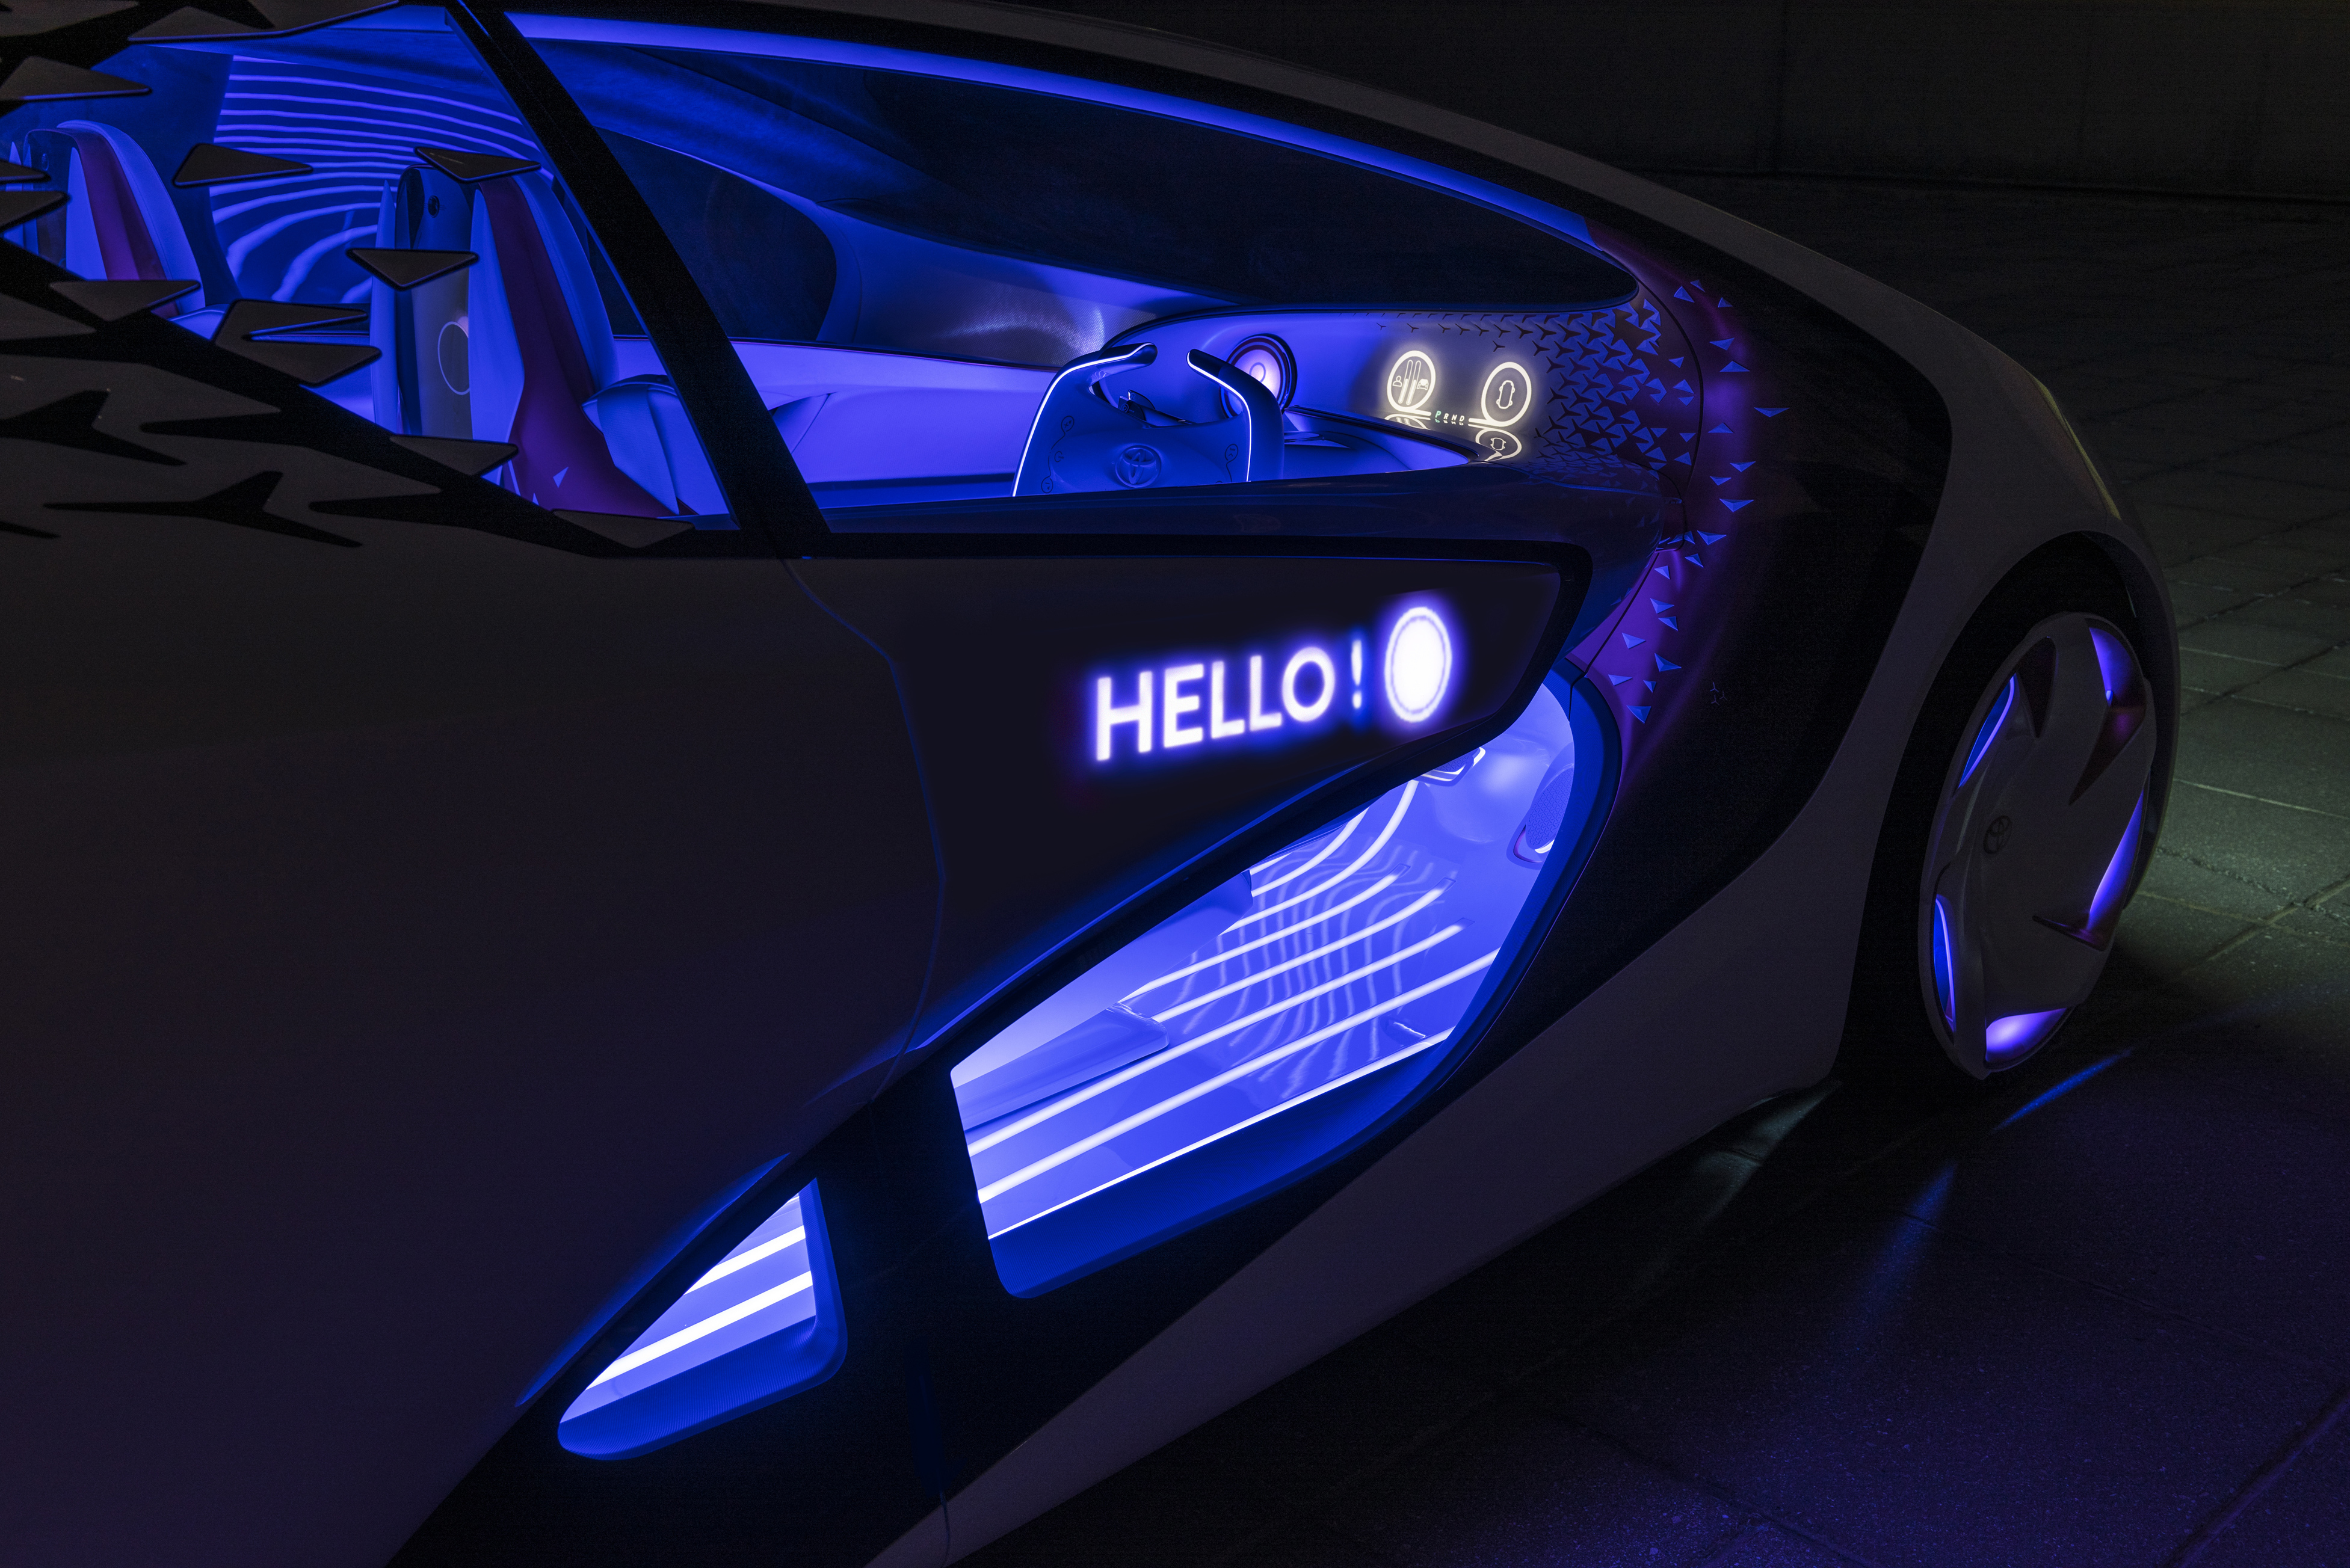 Toyota's Concept-i car will be able to communicate with the driver and with other drivers on the road.